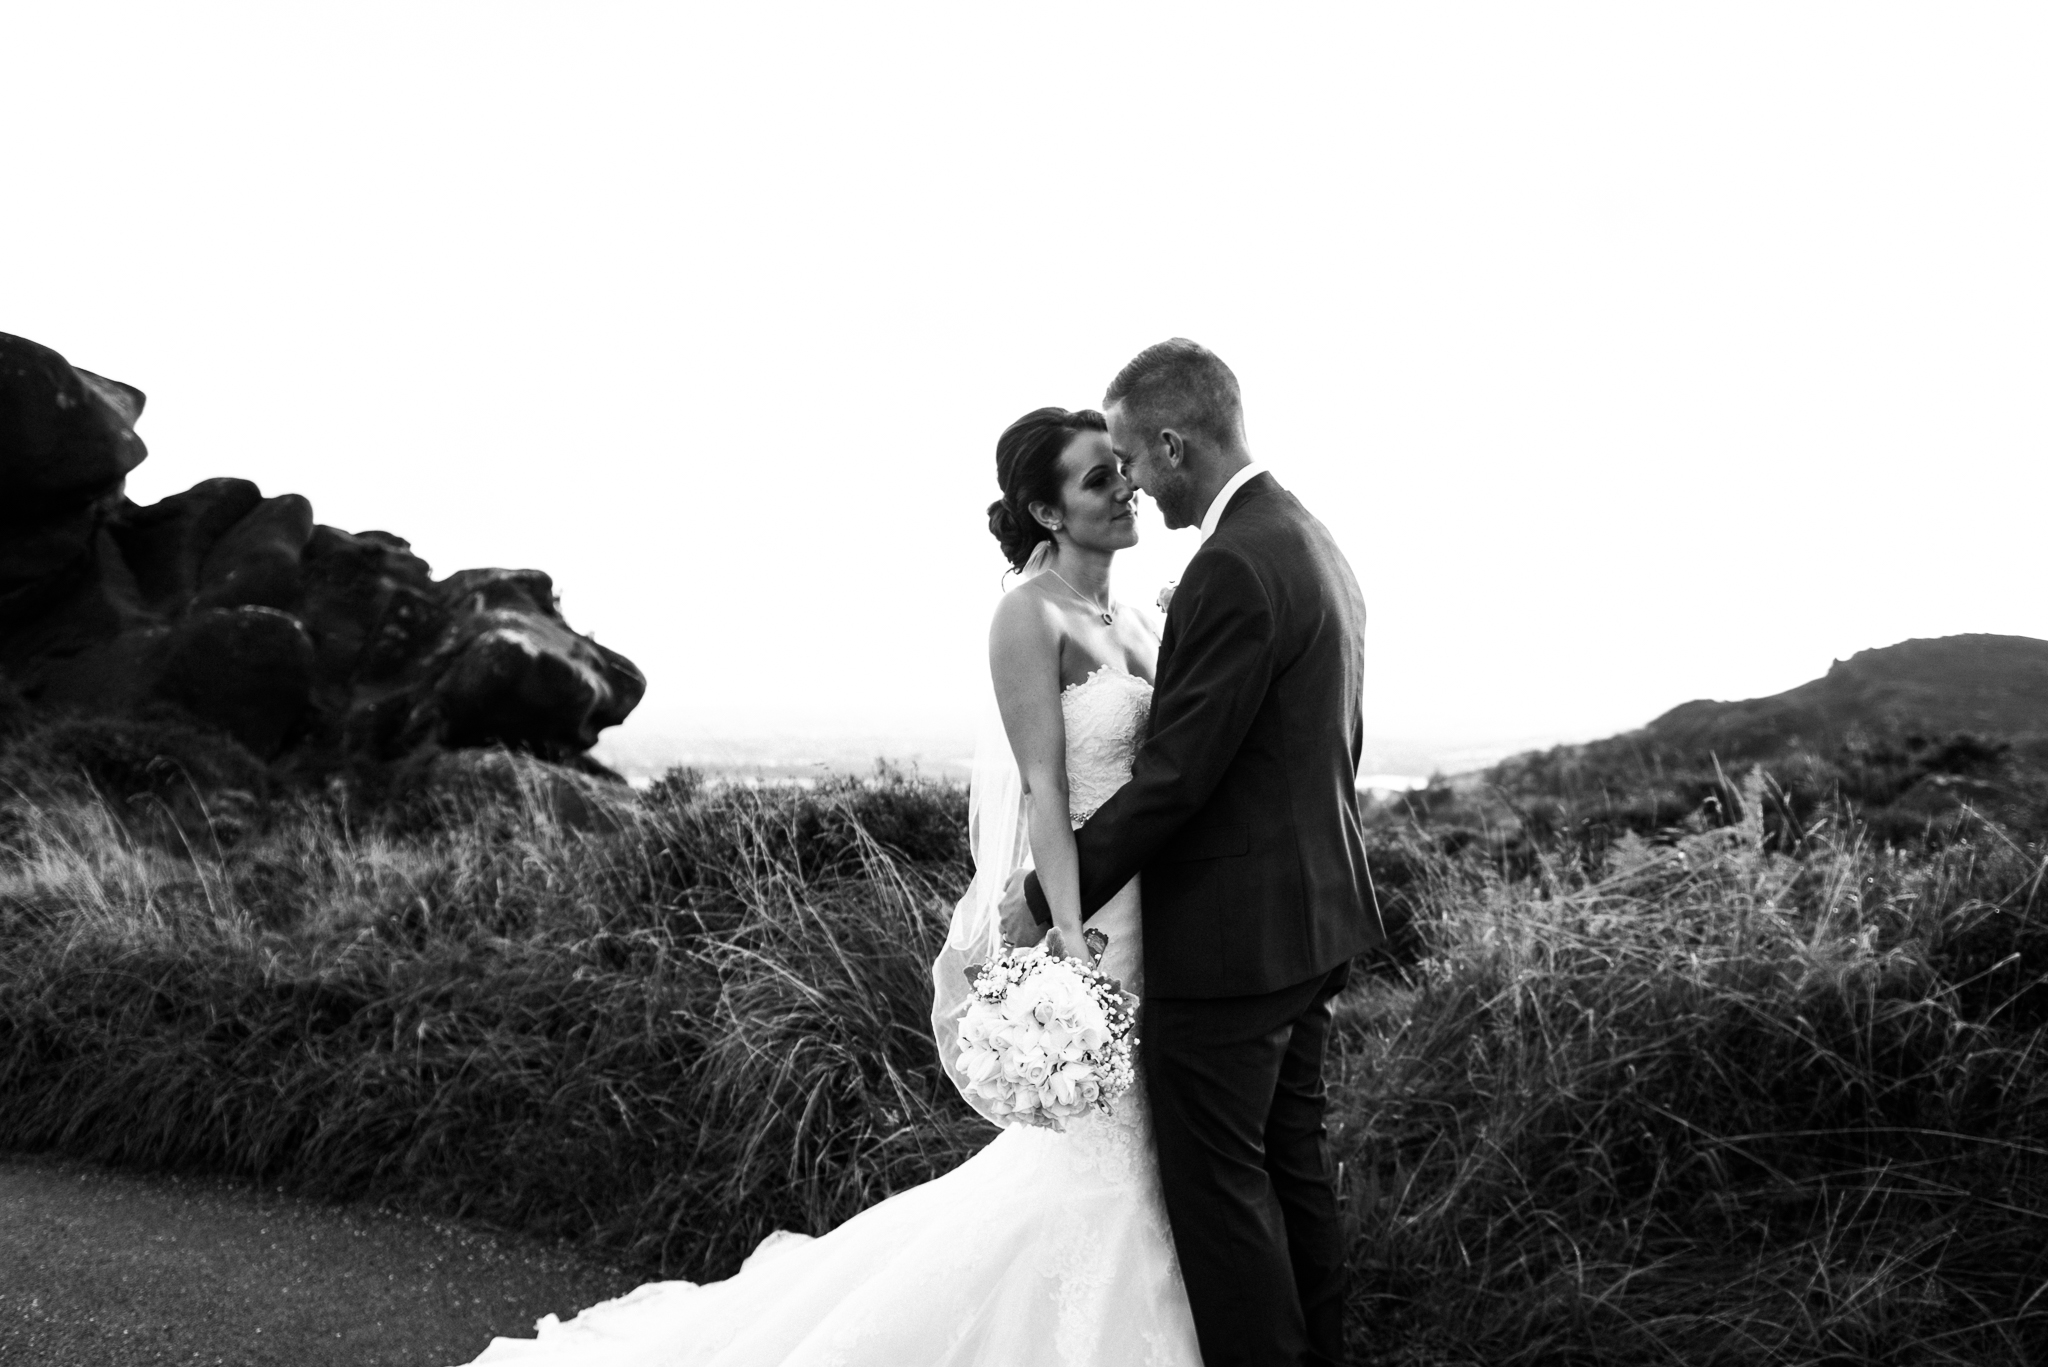 Staffordshire Moorlands Documentary Wedding Photography at The Three Horseshoes, Blackshaw Moor - Jenny Harper-39.jpg